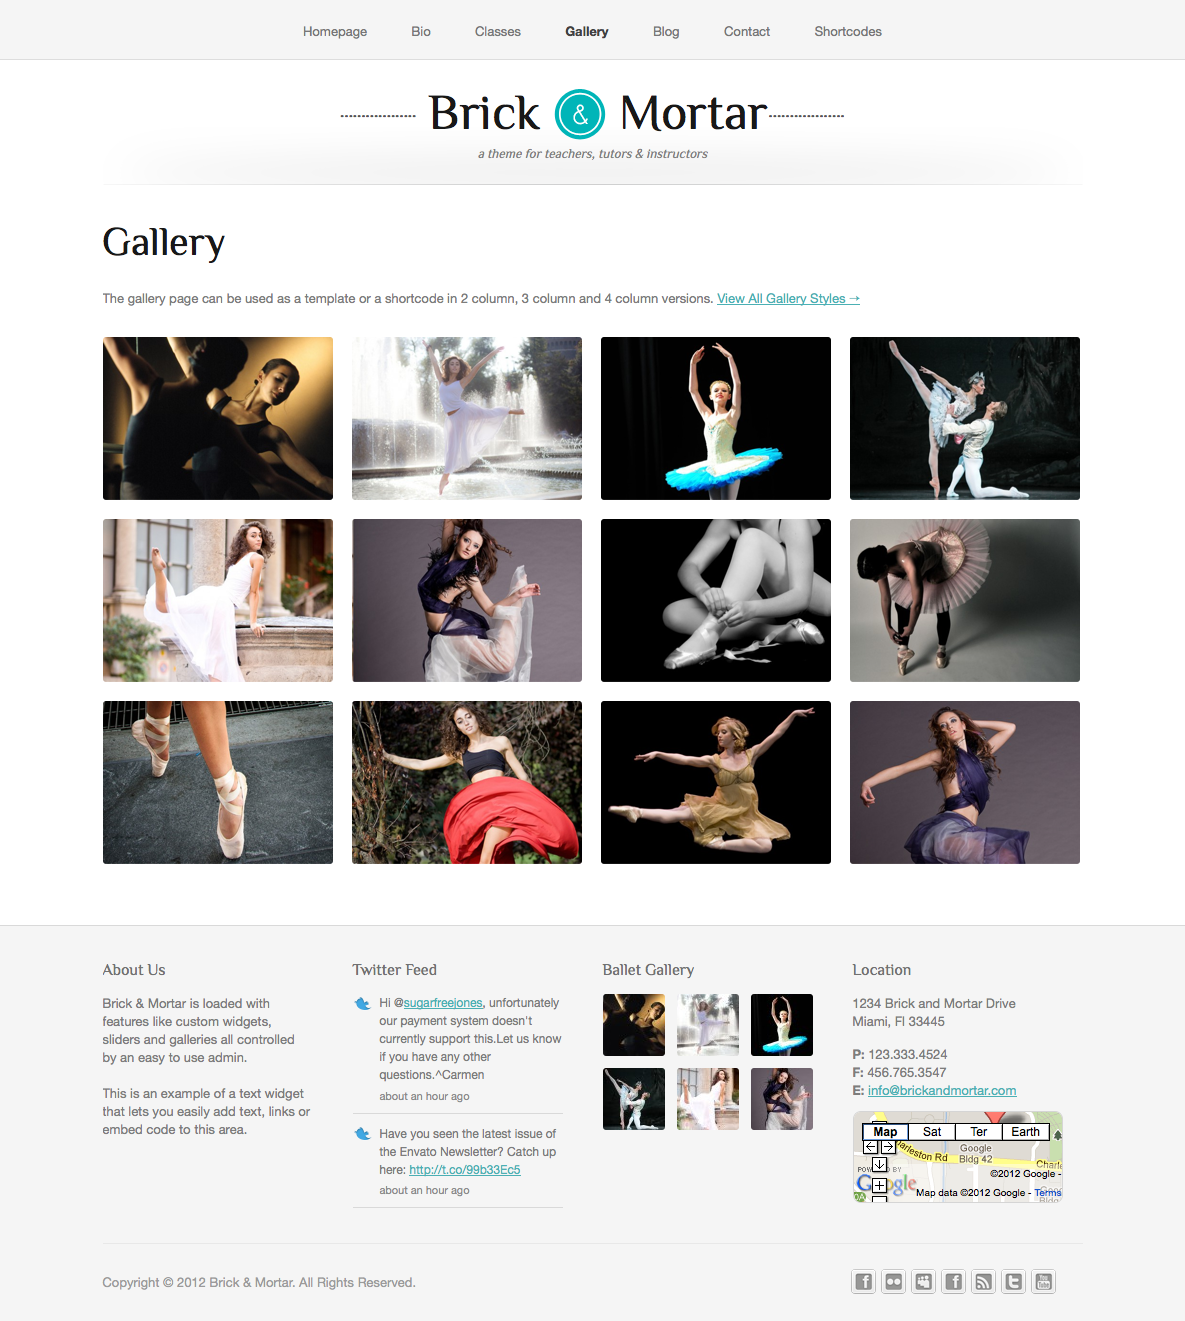 Brick & Mortar - A Personal Business Template - Gallery - The gallery comes in 3 different layouts - 2, 3 or 4 columns. You can add images or videos that open in a lightbox or on their own description page.